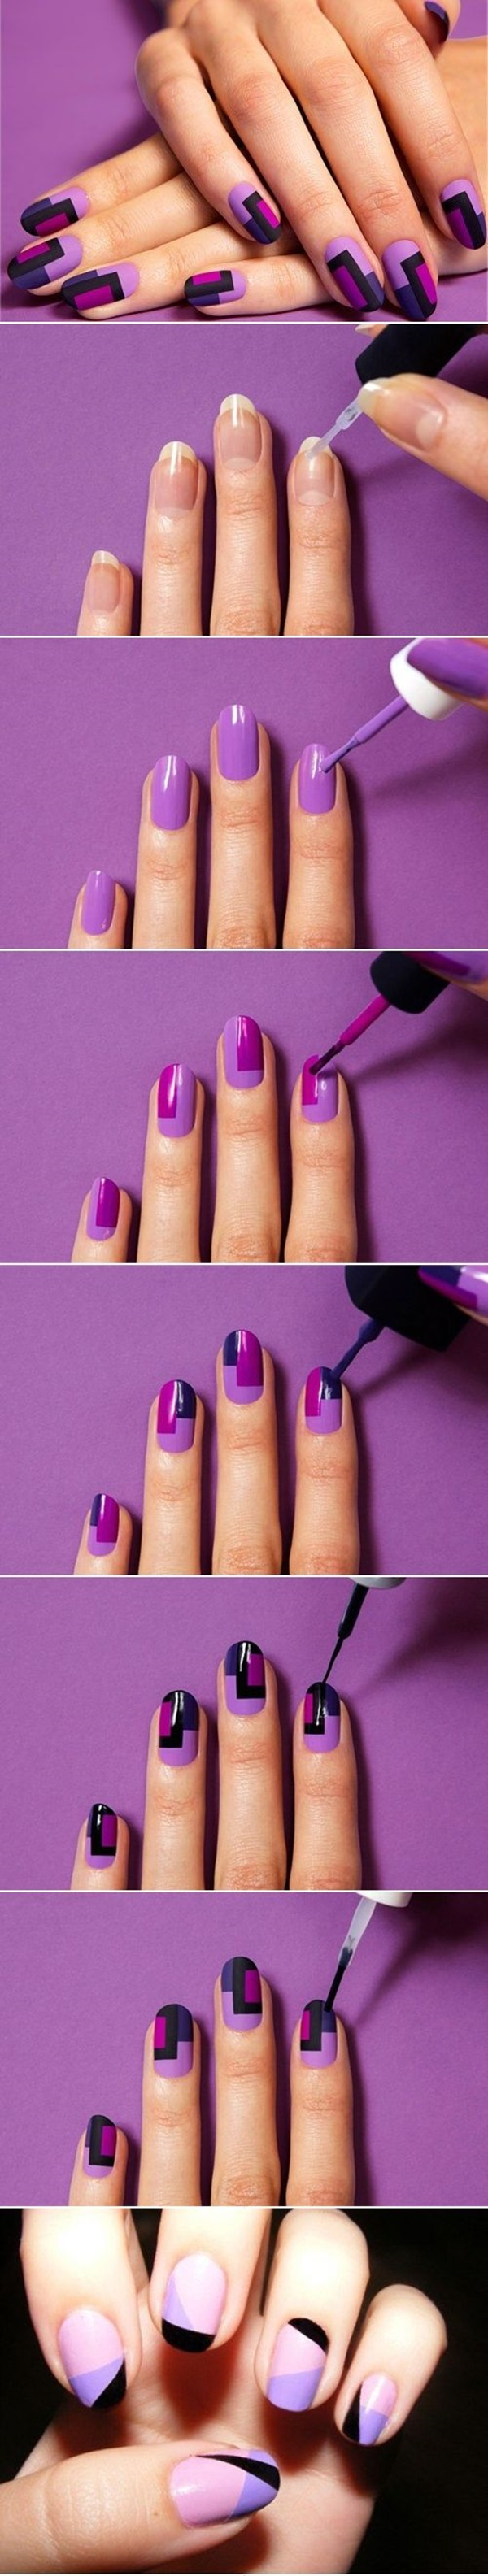 DIY Nail art designs (14)